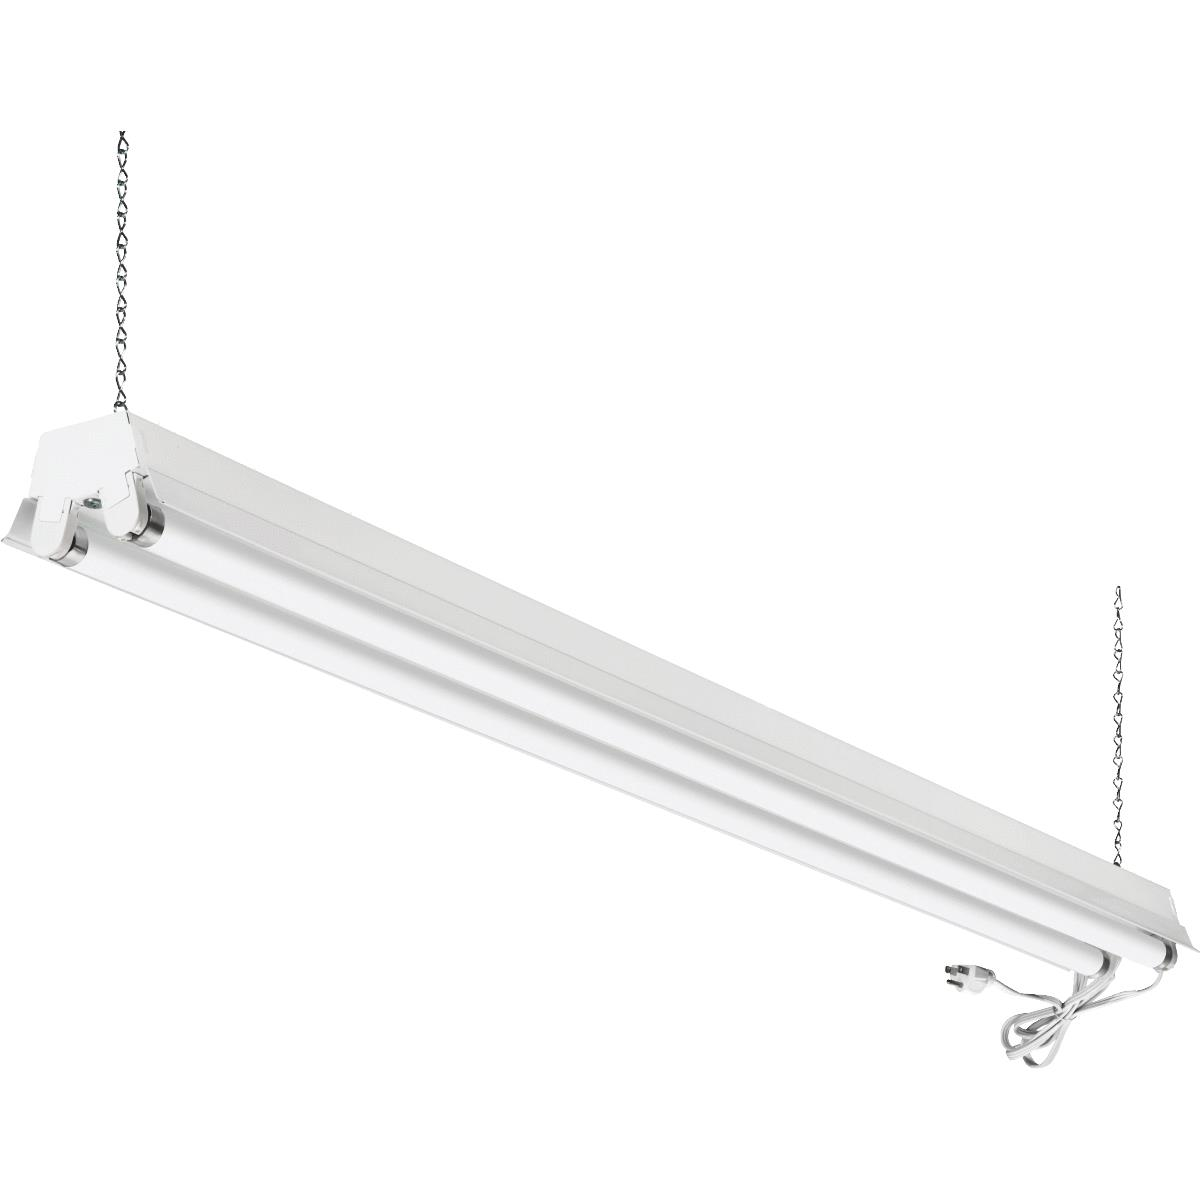 4-Ft. White T12 2-Light Fluorescent Shop Light Fixture